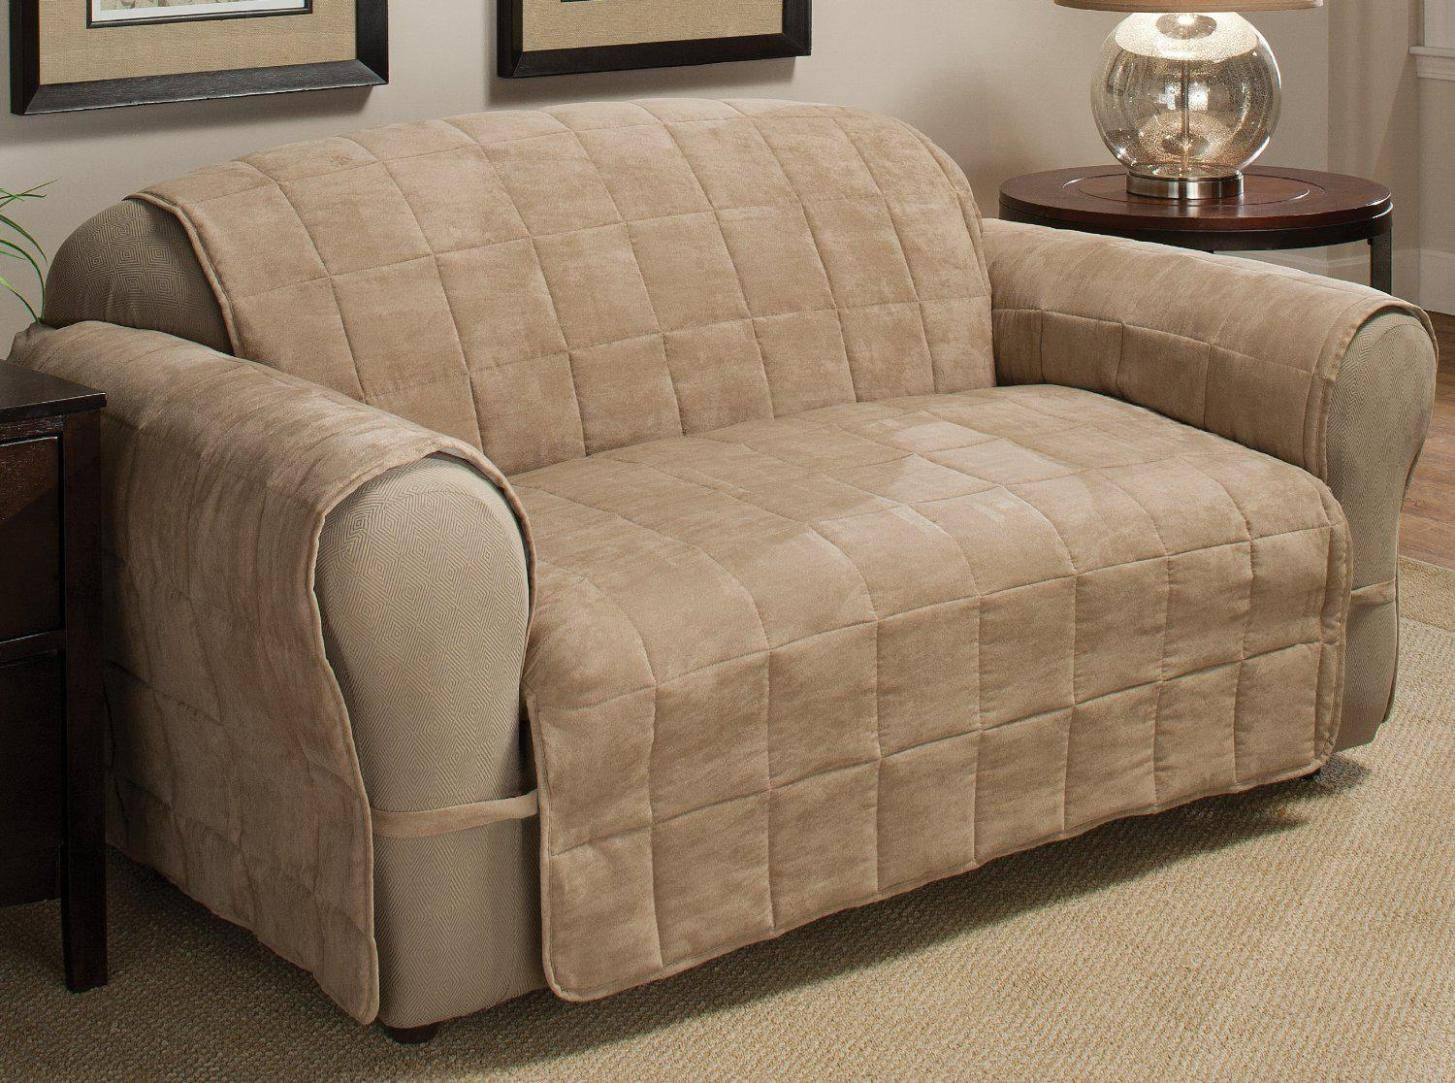 Furniture & Rug: Chic Recliner Covers For Prettier Recliner Ideas Regarding Sofa And Chair Covers (Photo 2 of 30)